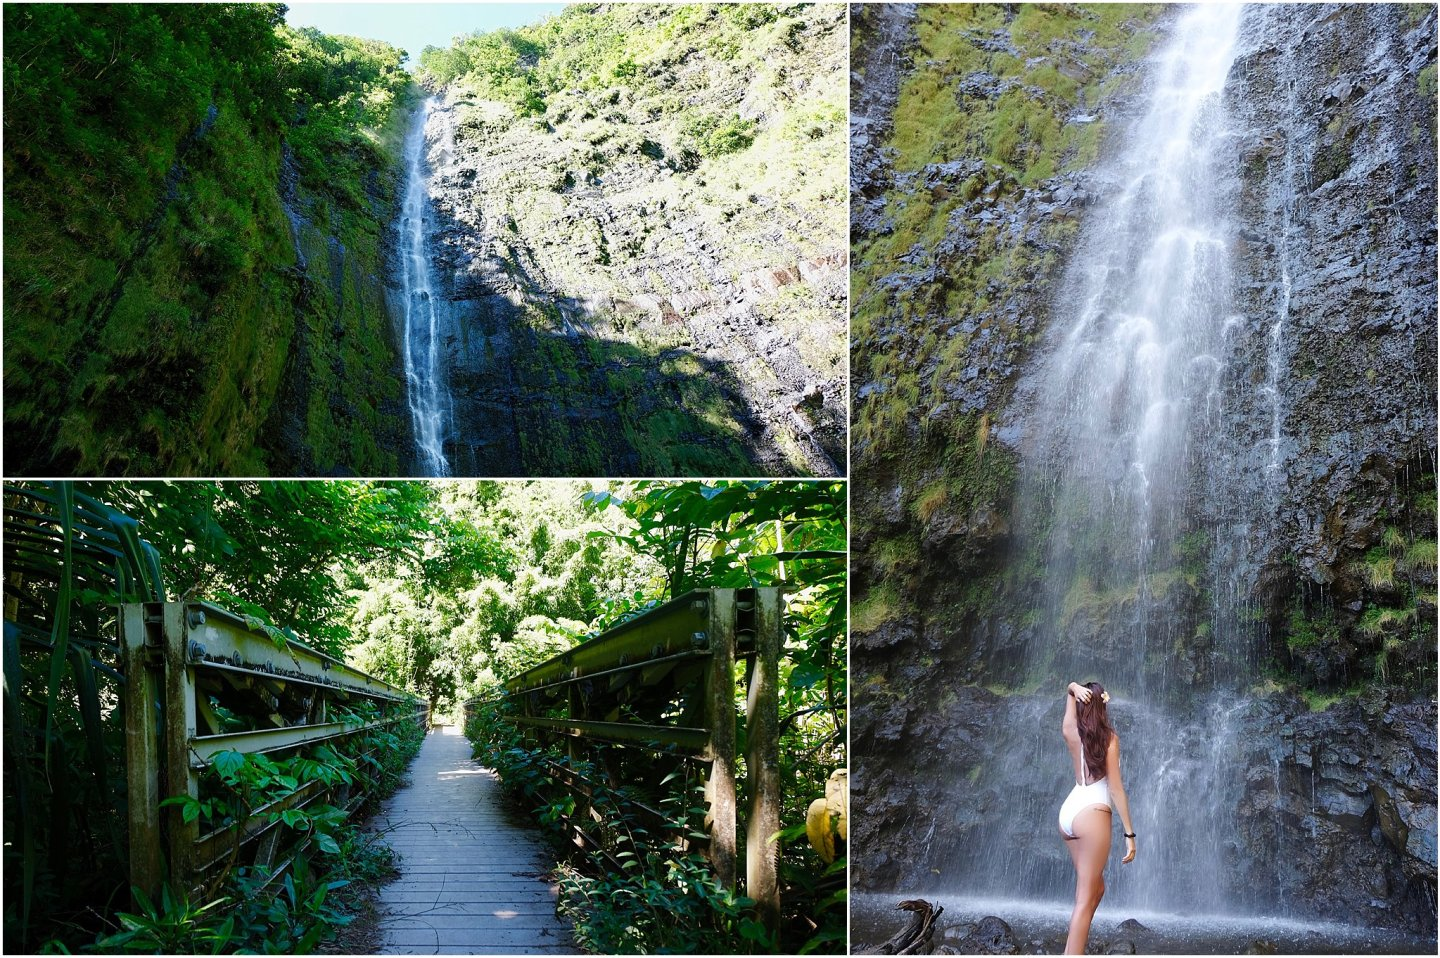 Waimoku Falls- The road to Hana maui - Road or destination? Guest Post by Lara Olivia Miss Portmanteau? Club Elsewhere - The World's Travel Diary edited by Rosie Bell